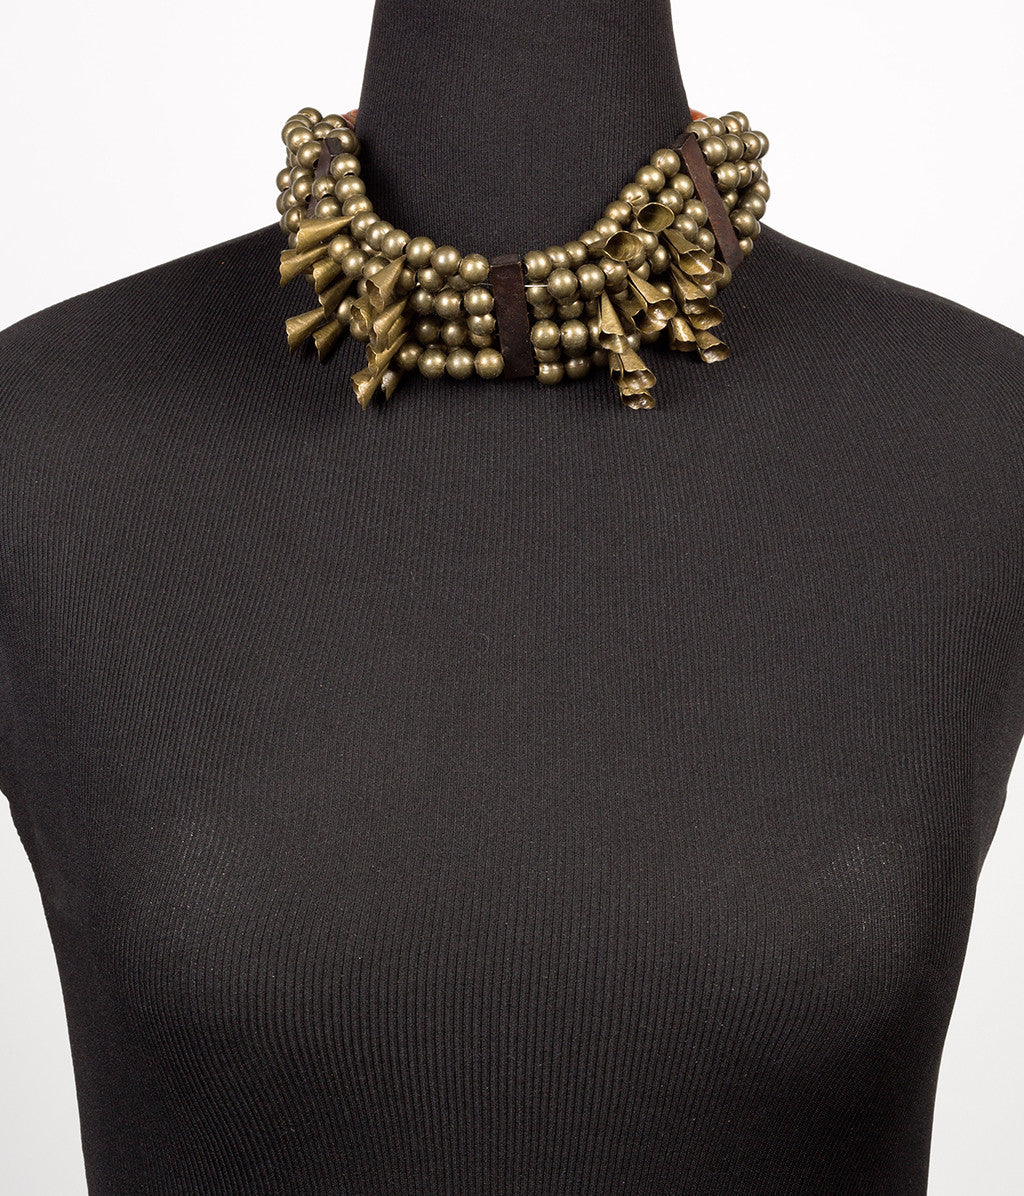 Choker Brass Necklace - Inspired Luxe